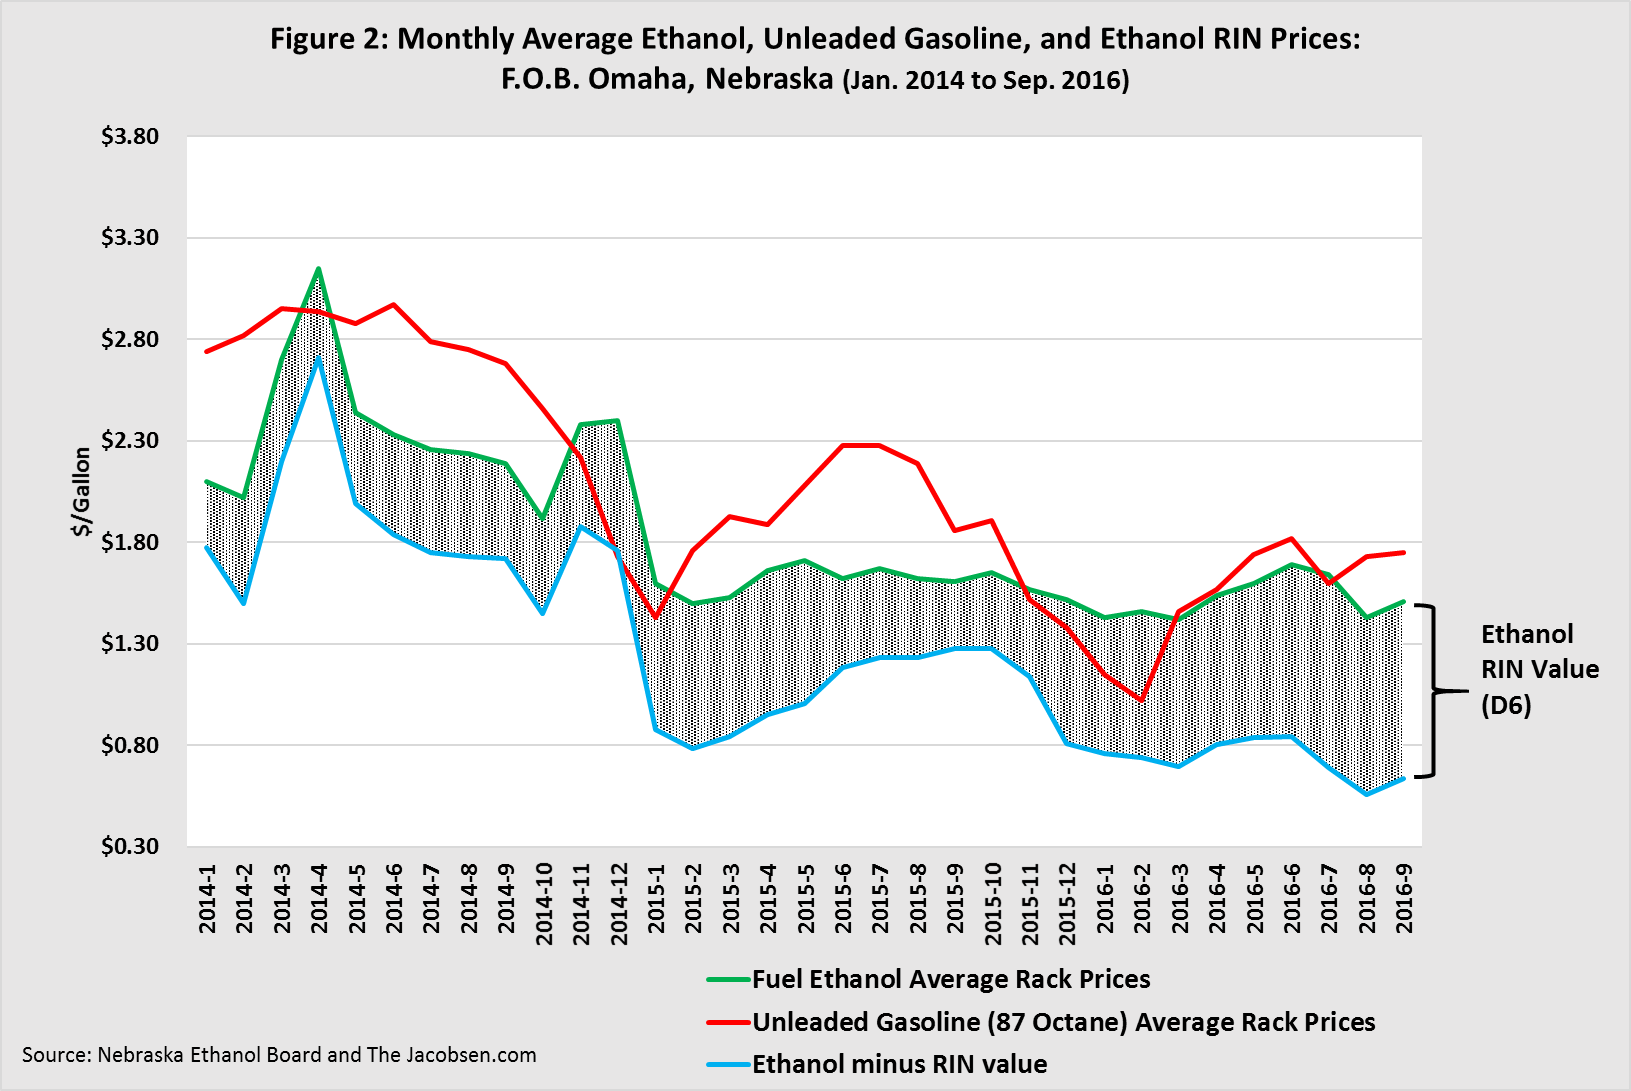 Monthly Average Ethanol, Unleaded Gasoline, and Ethanol RIN Prices